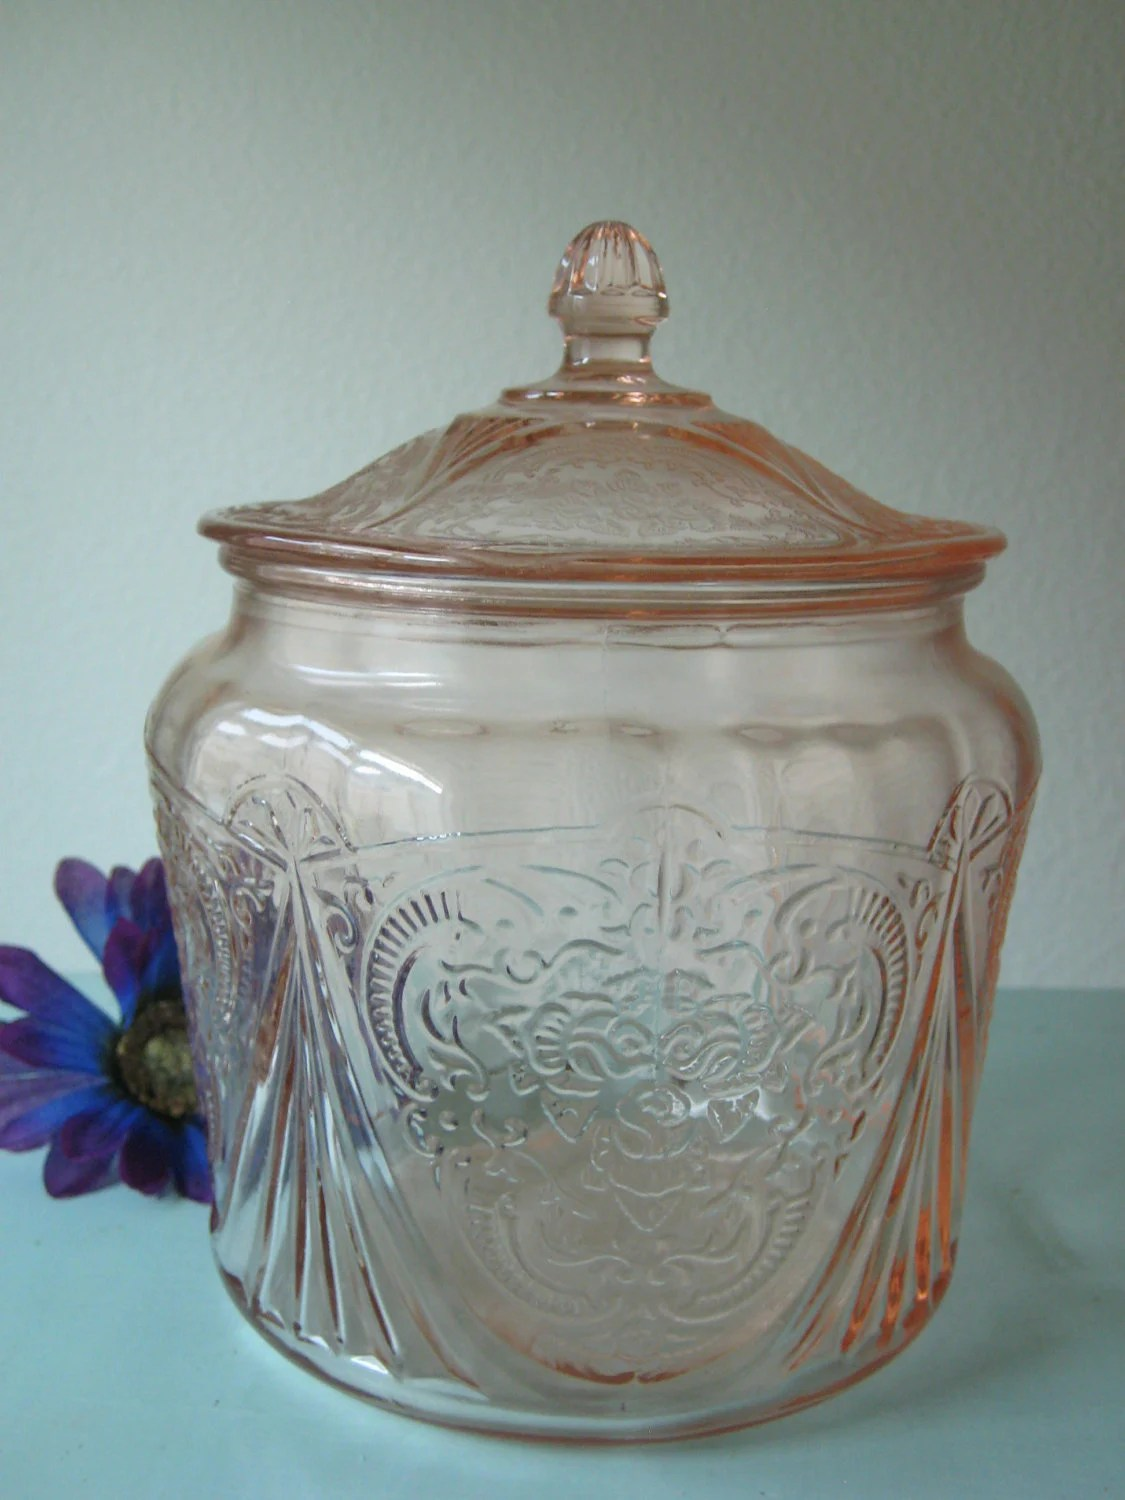 Pink Depression Glass Biscuit Cookie Jar with Lid by